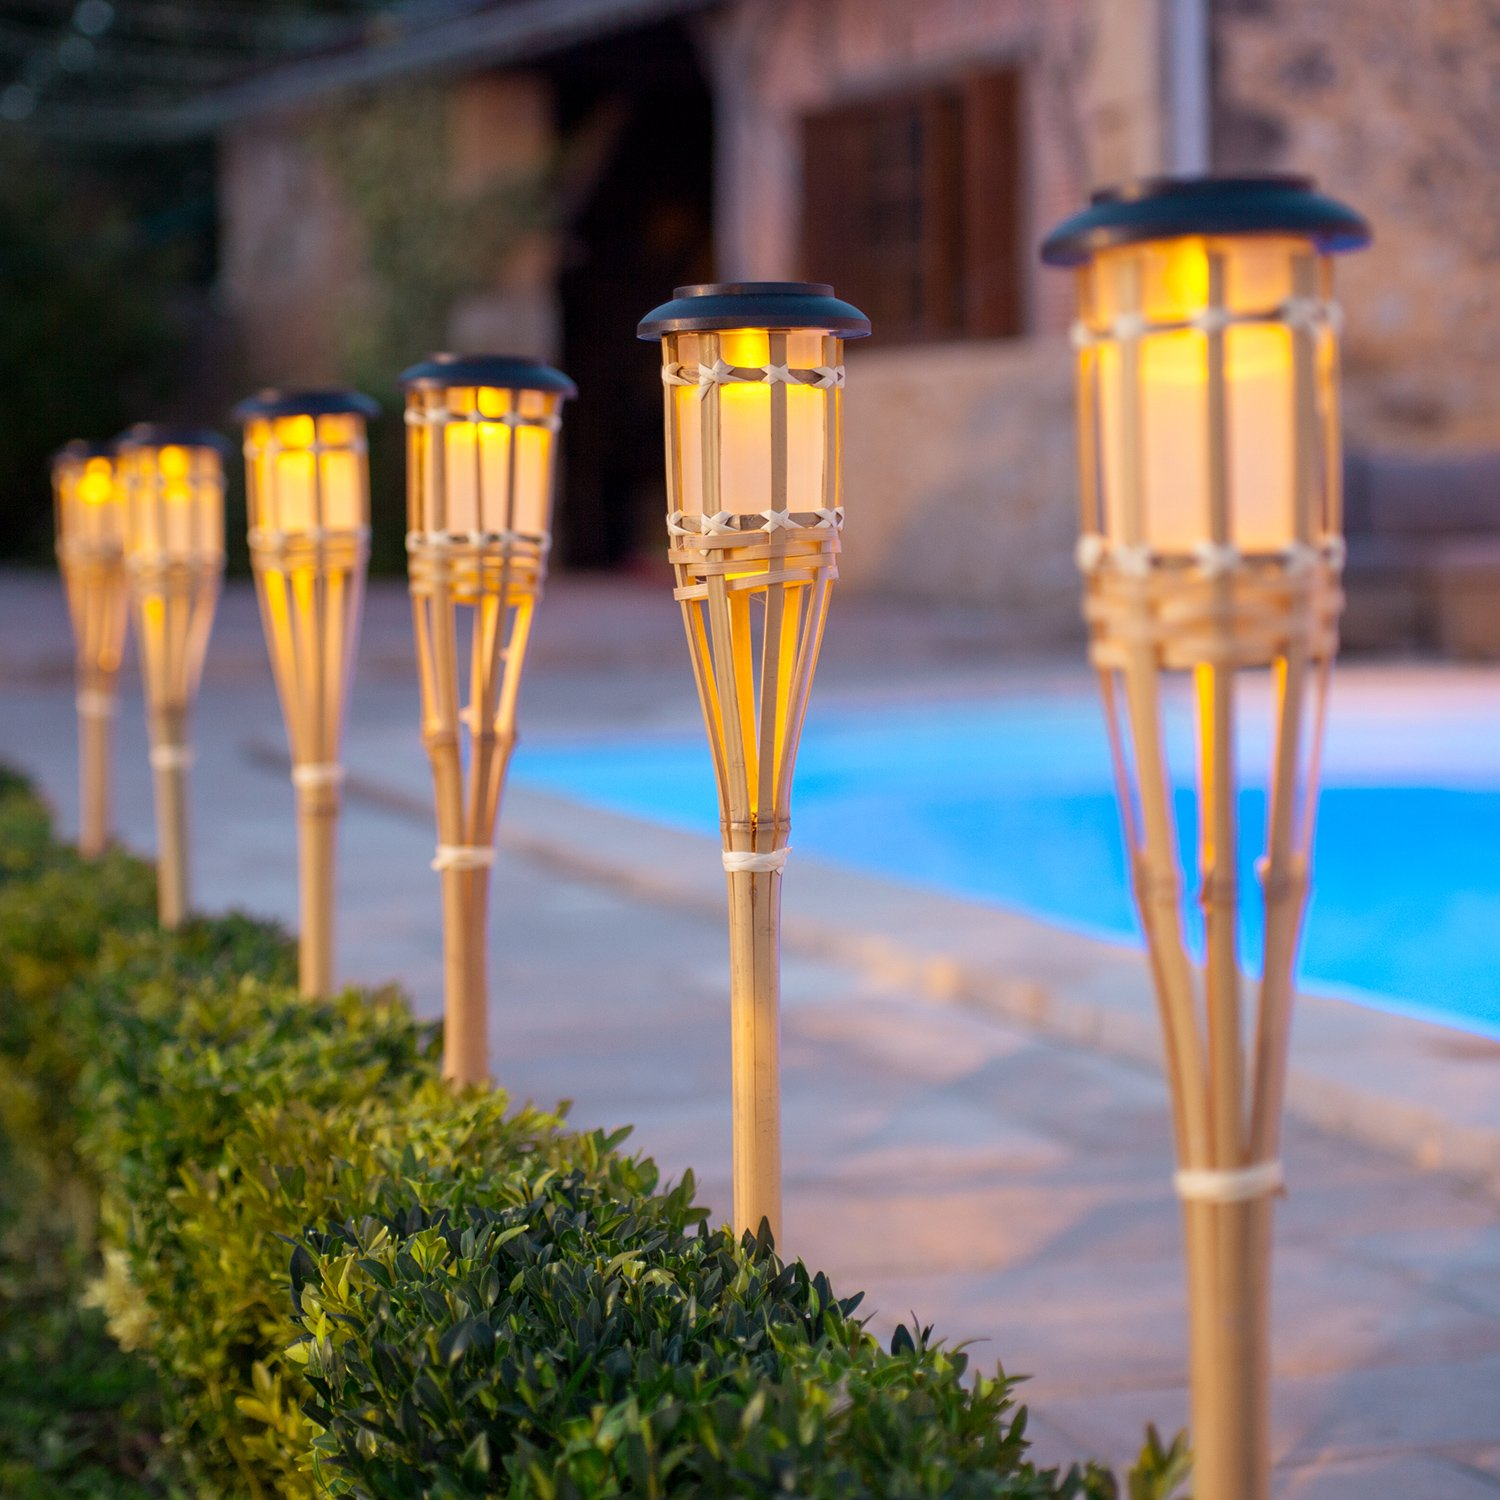 Set of 10 large solar powered led bamboo garden torches by set of 10 large solar powered led bamboo garden torches by lights4fun amazon garden outdoors workwithnaturefo